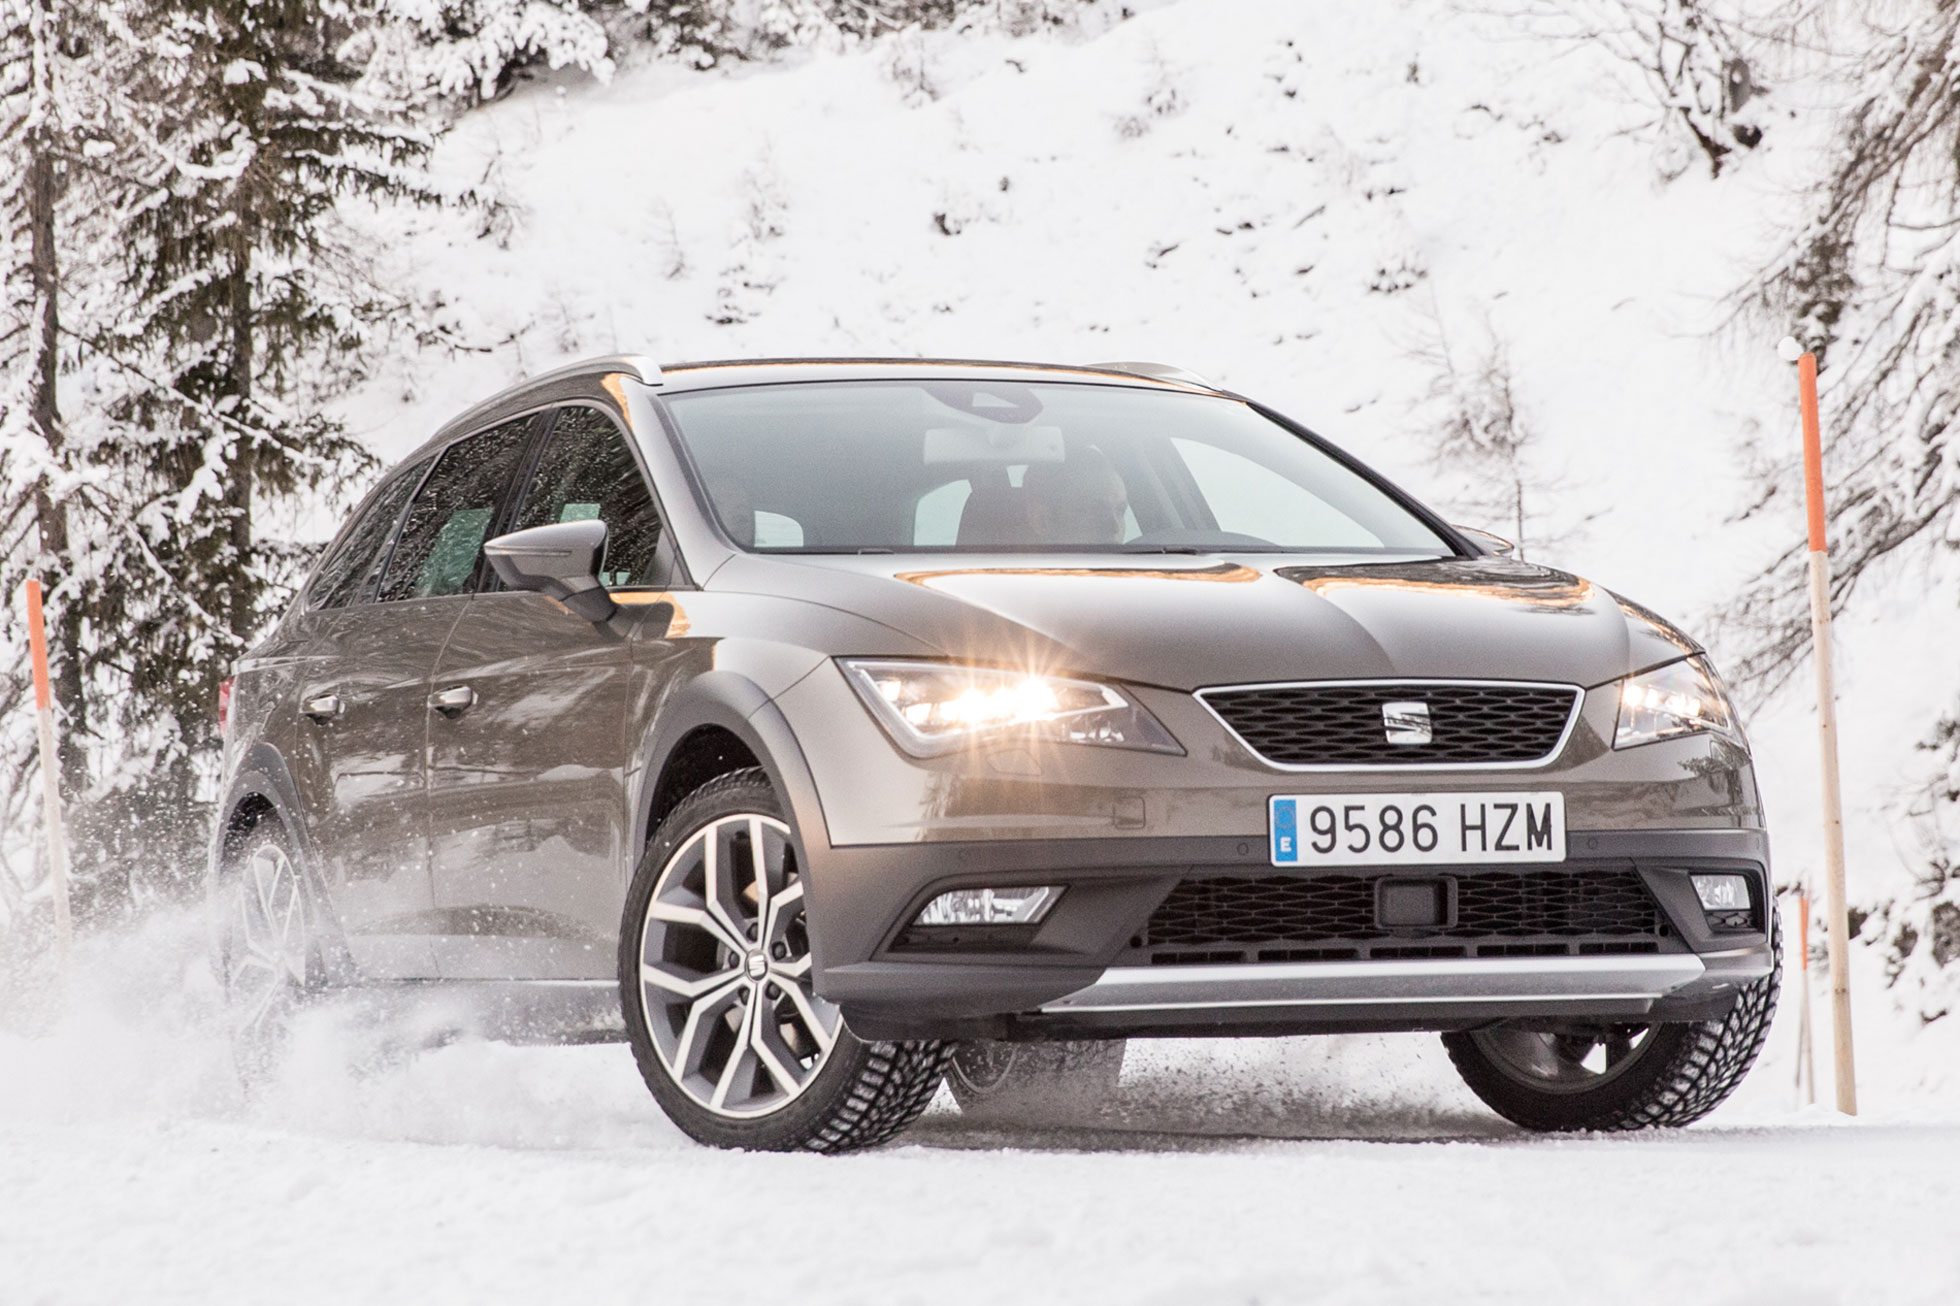 seat leon x perience 2015 first drive review motoring research. Black Bedroom Furniture Sets. Home Design Ideas